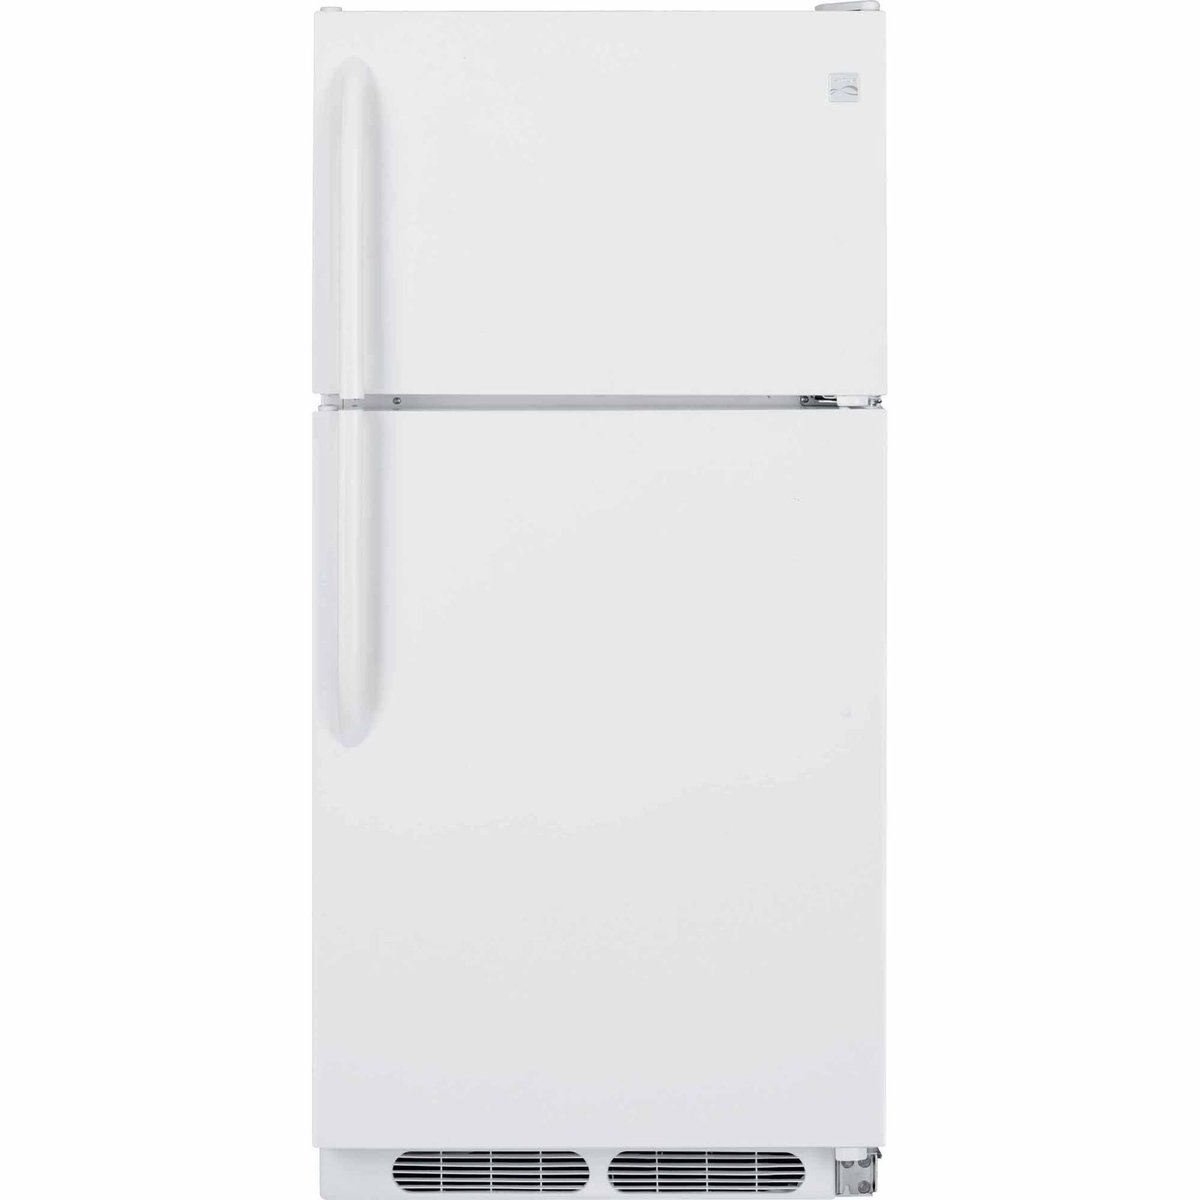 Kenmore 60302 14.8 cu. ft. Top-Freezer Refrigerator, White